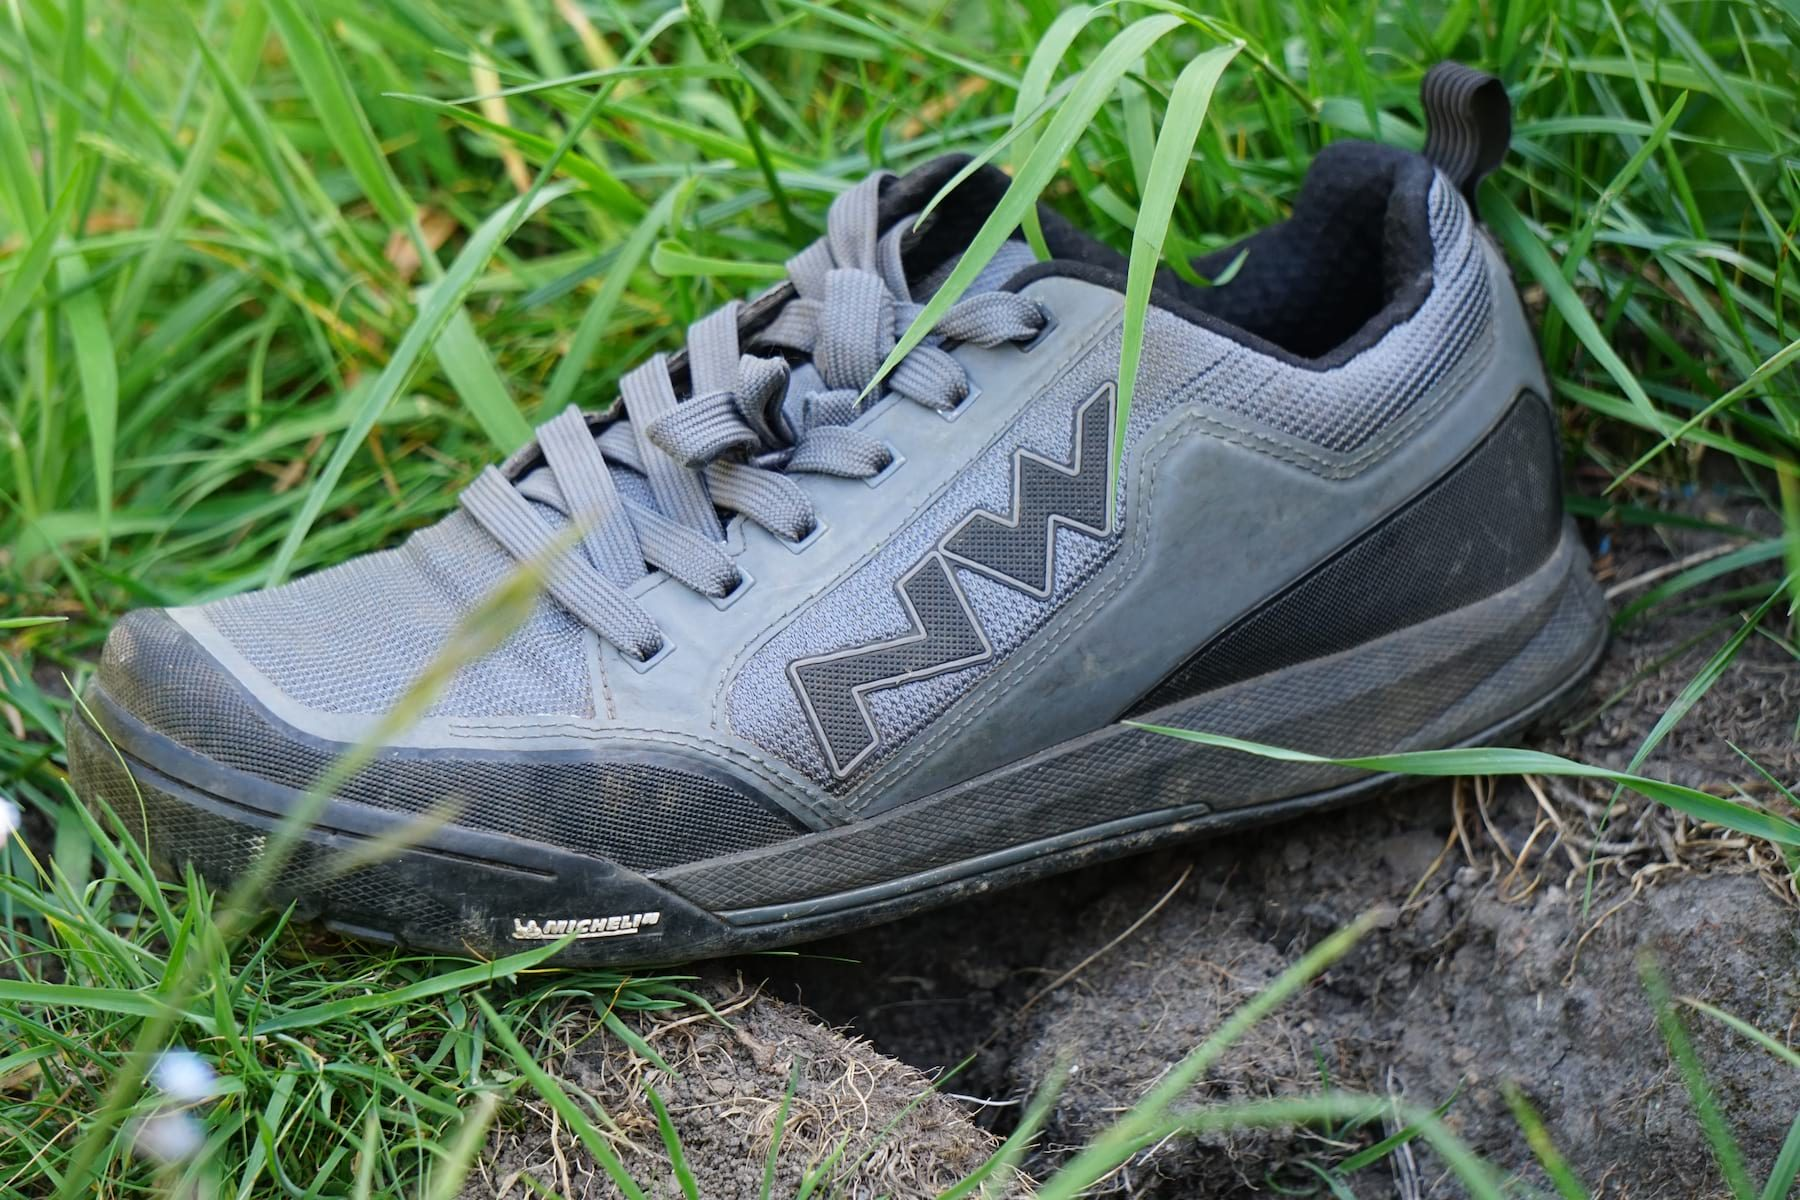 northwave clan flat shoe review